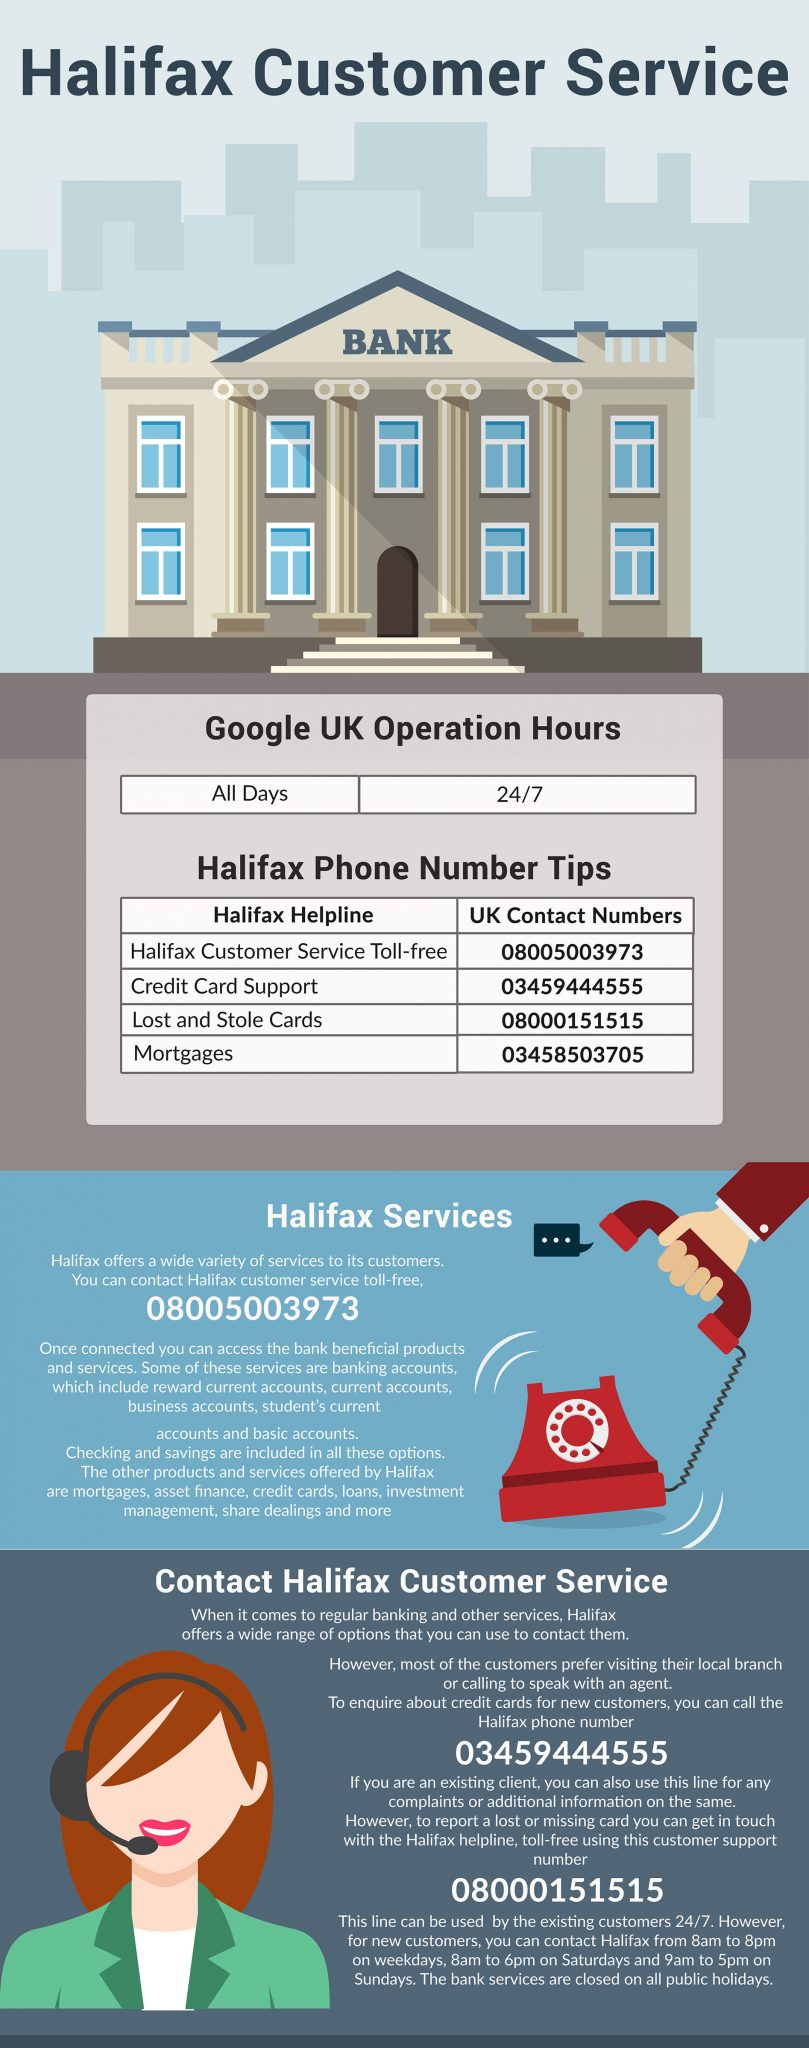 Halifax numbers UK